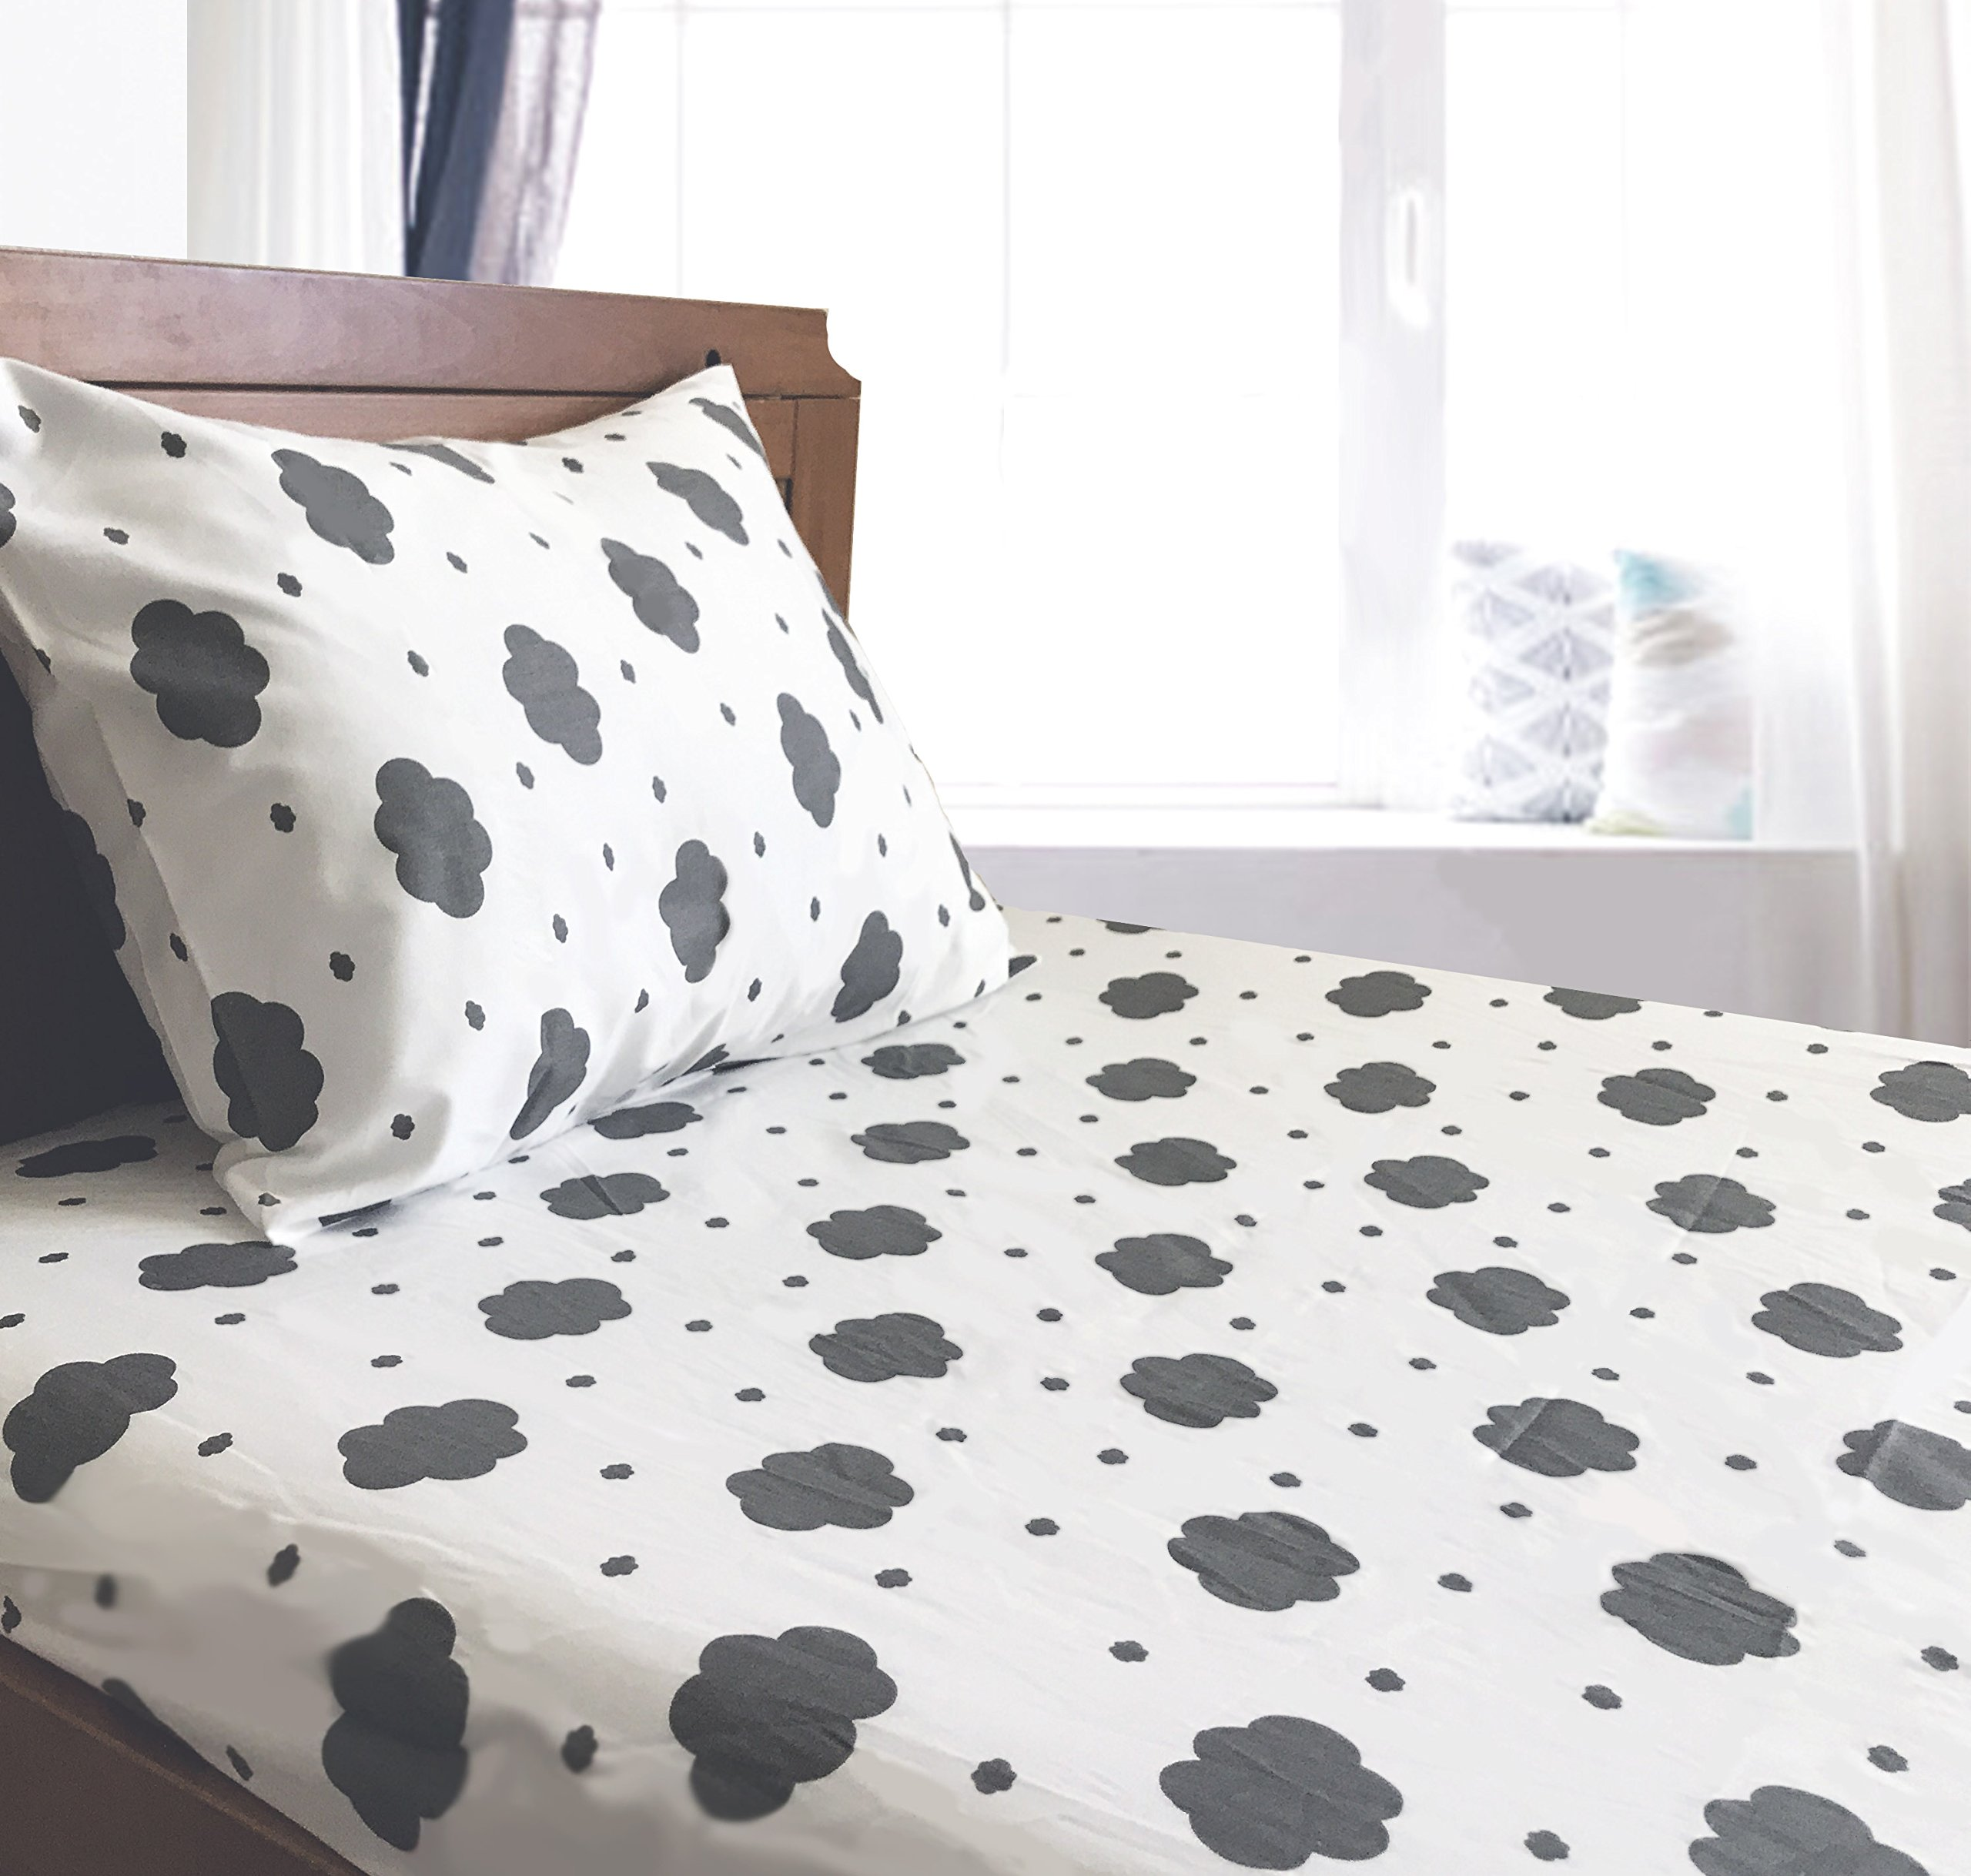 Crib / Toddler Bed Sheet and Pillowcase Set (Grey Clouds) 100% Premium Cotton by Dreamtown Kids